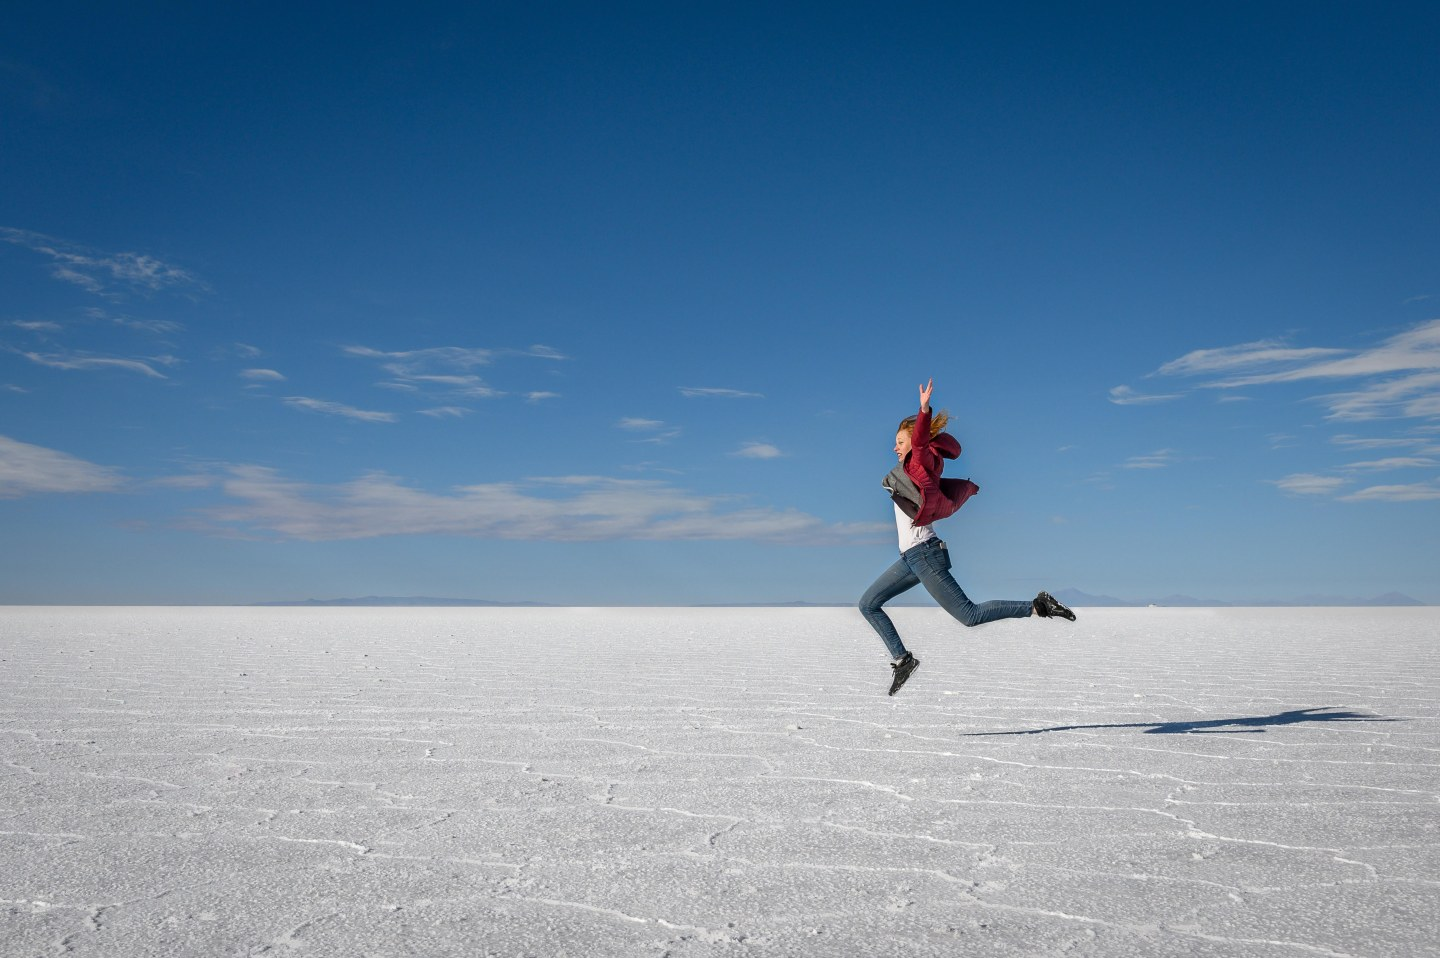 Flying high, Salar de Uyuni, Bolivia.